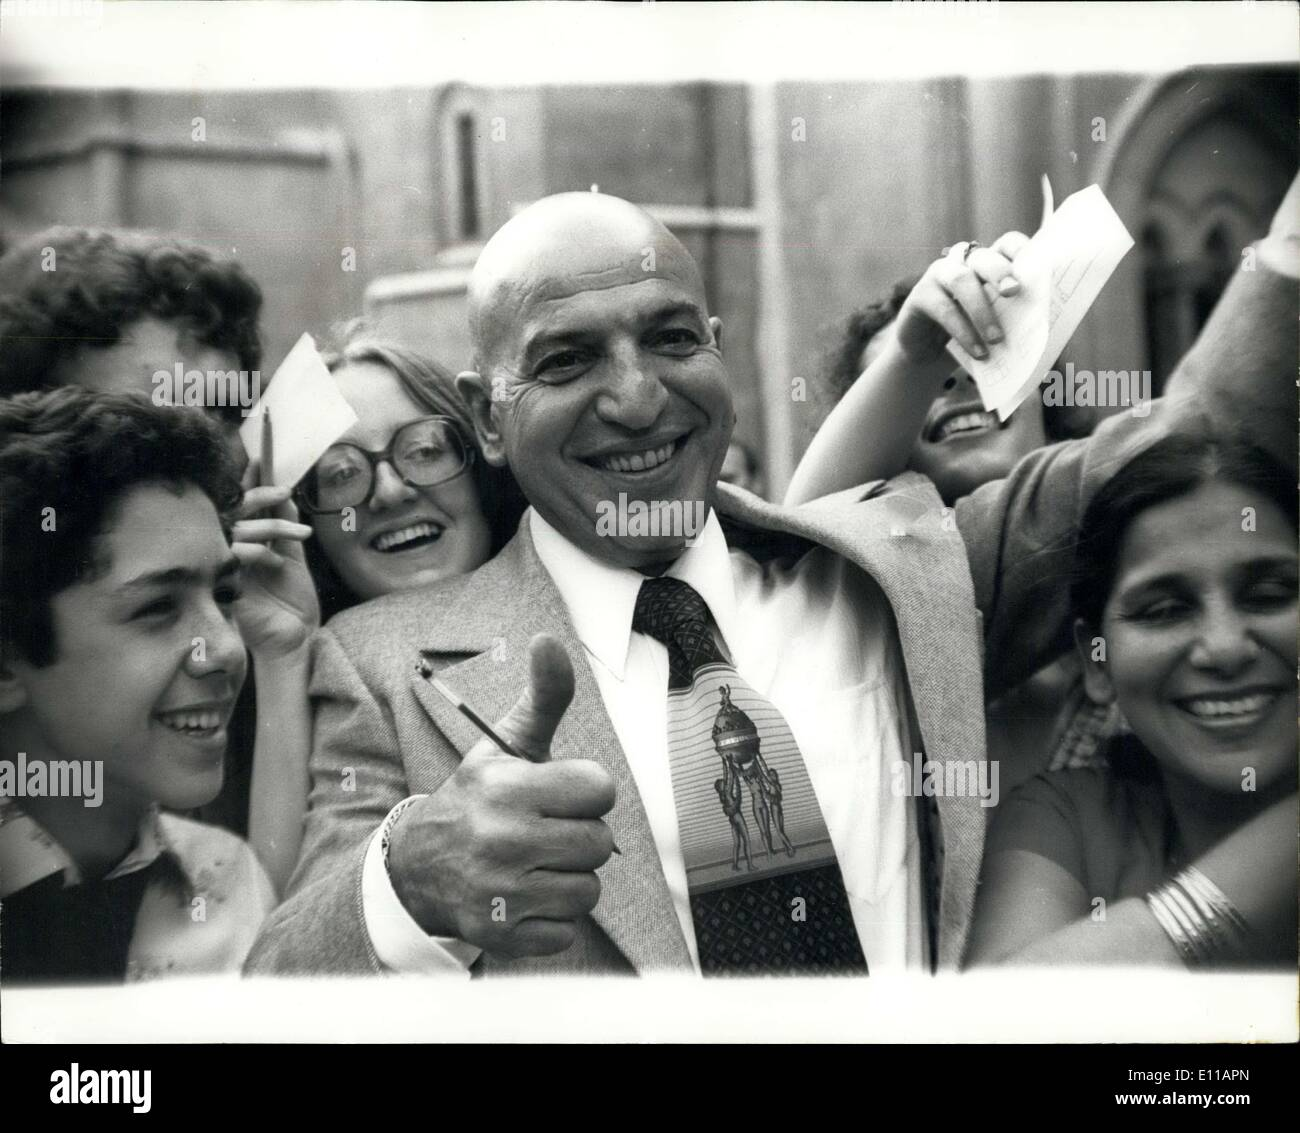 Jun. 15, 1976 - Telly Savalas (Kojak) is awarded 34,000 damages in his libel case against the daily mail; Telly Savalas, the tough cop in the American TV series Kojak, was awarded 34,000 damages in the High Court today in his libel action against the London newspaper, the Daily Mail, Mr. Savalas sued the Associated Newspapers, the publishers, over an article published in the Daily Mail last year which said that his wild night life in Berlin during the filming of a picture led him to forget his lines - Stock Image